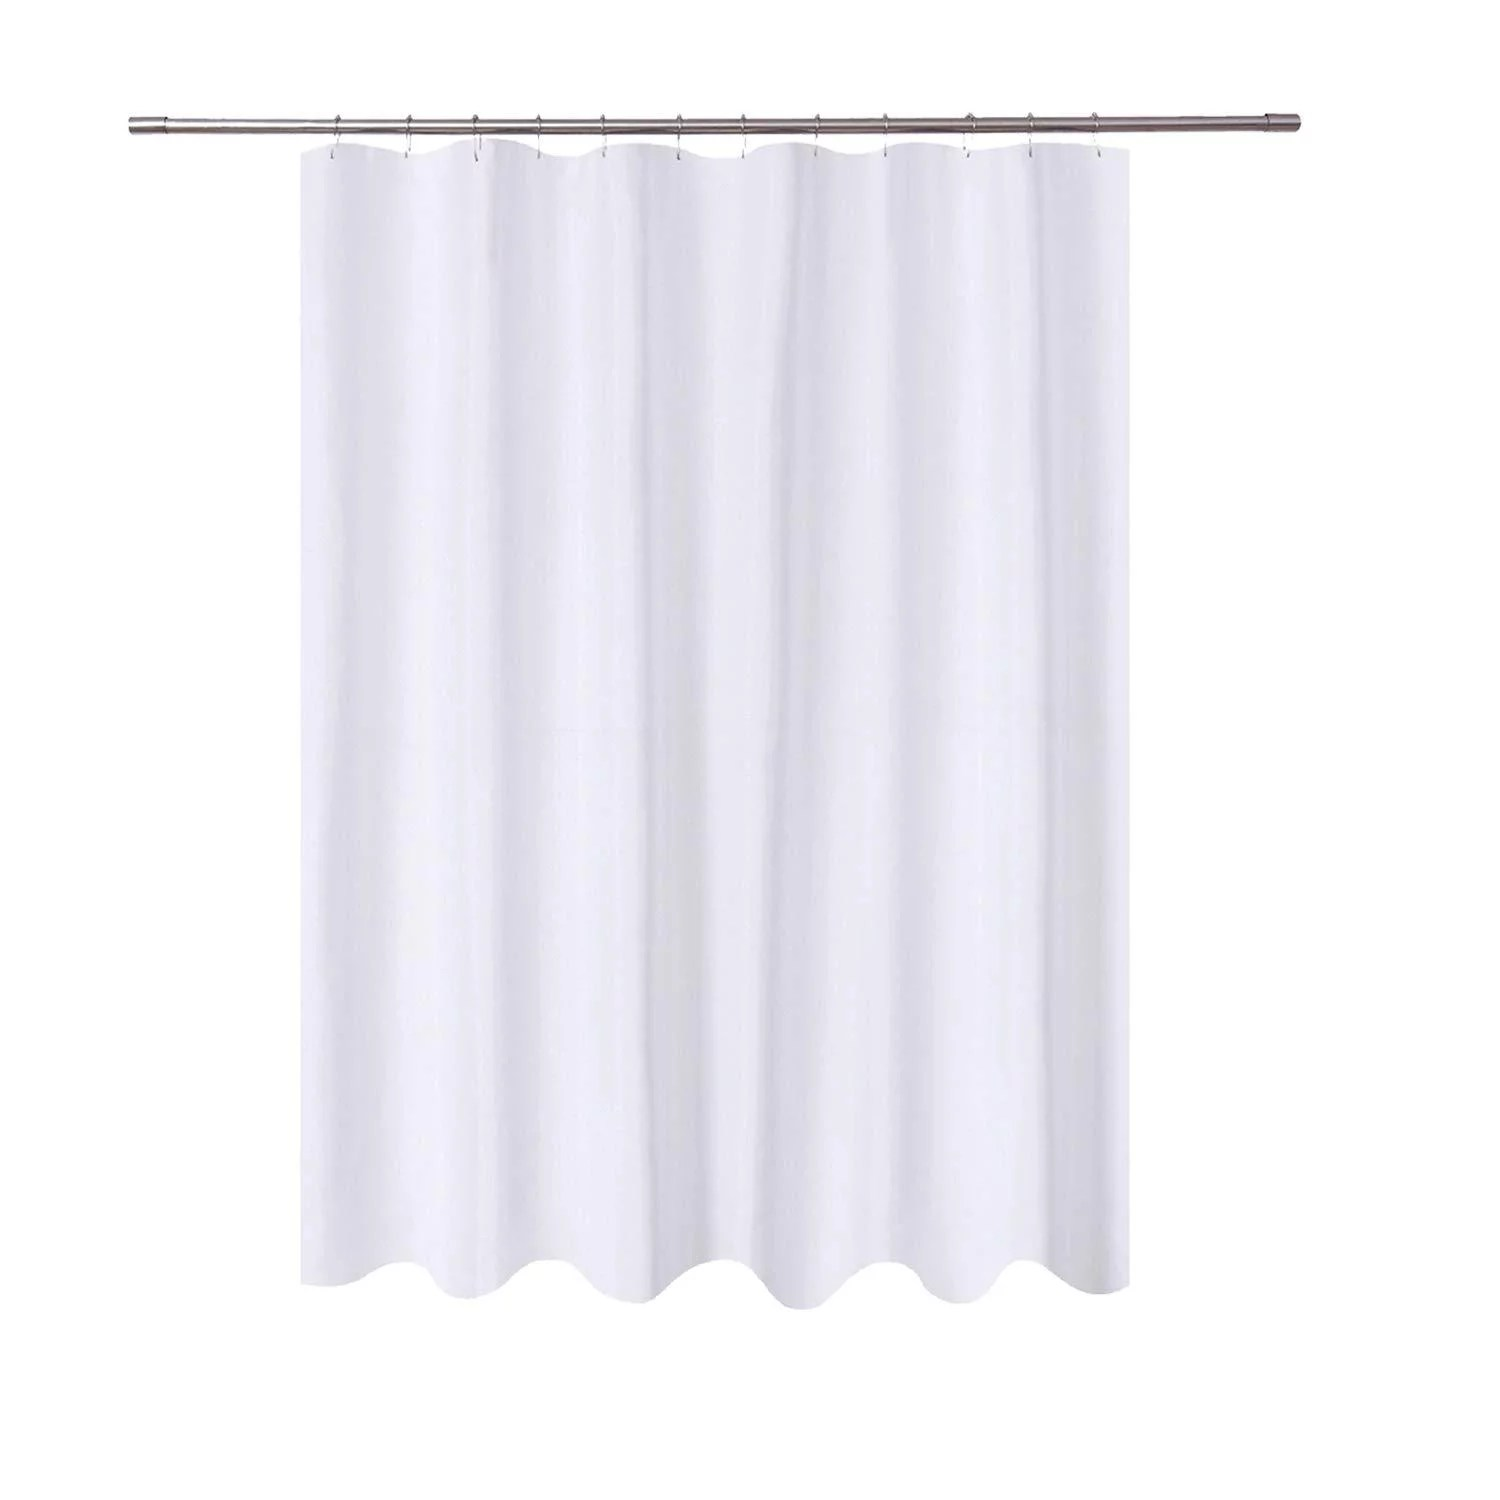 n y home long fabric shower curtain liner 72 x 78 inches longer length hotel quality washable water repellent white spa bathroom curtains with